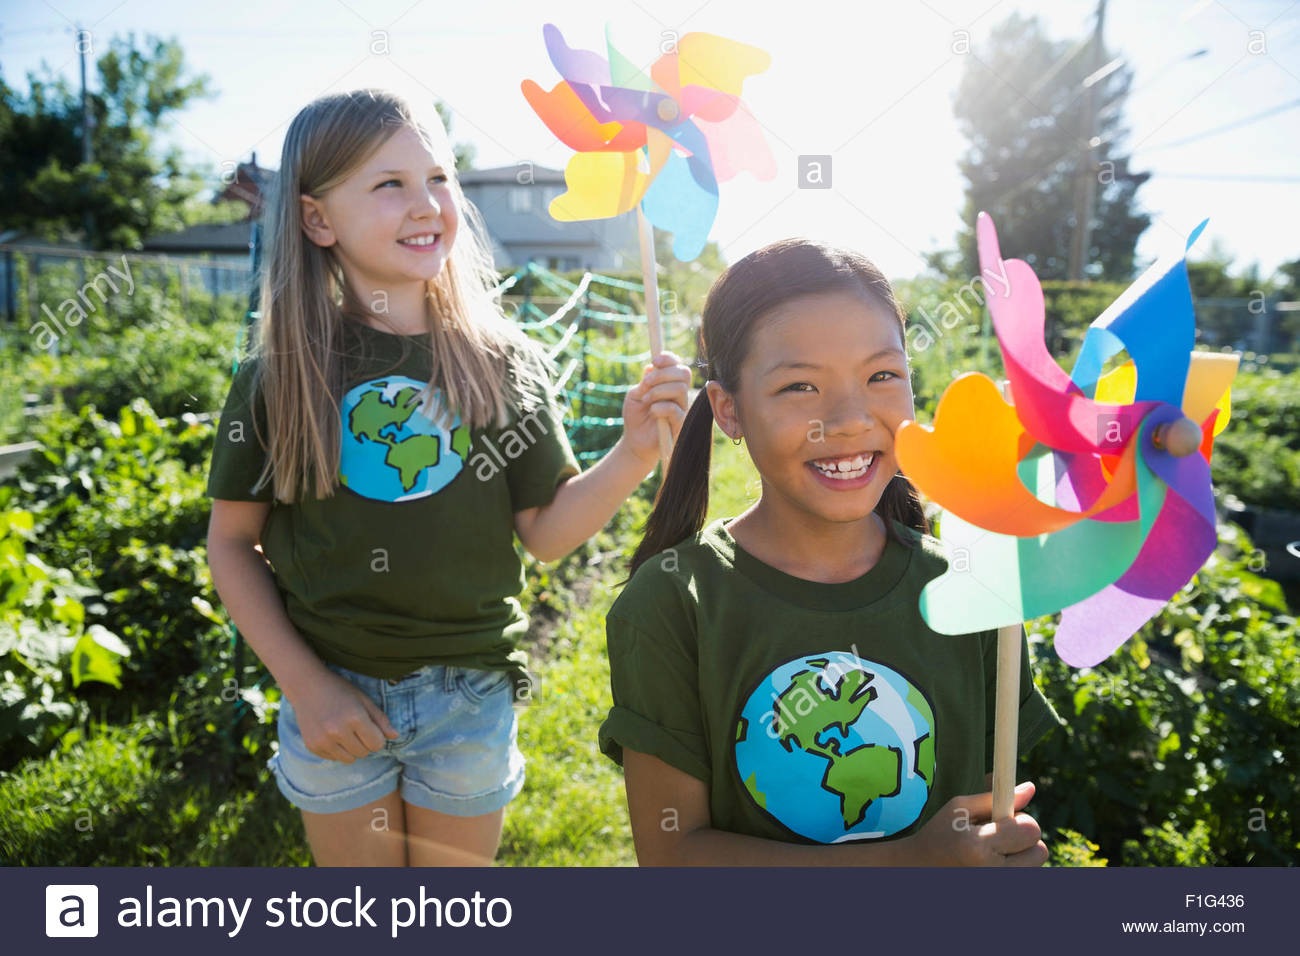 Portrait smiling girls with pinwheels in sunny garden - Stock Image